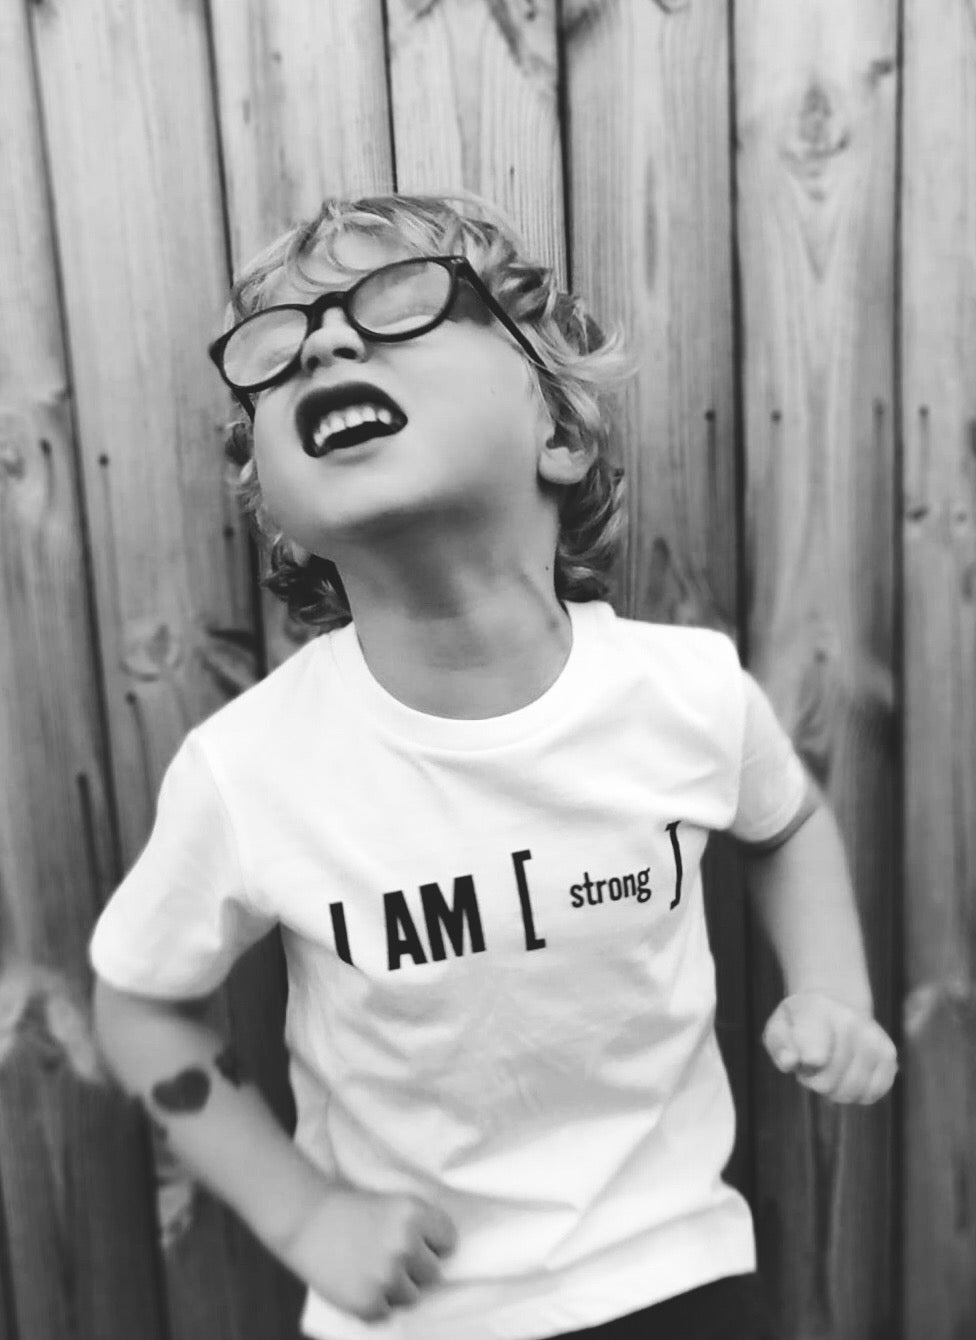 Casey Is - I AM [strong] T-Shirt